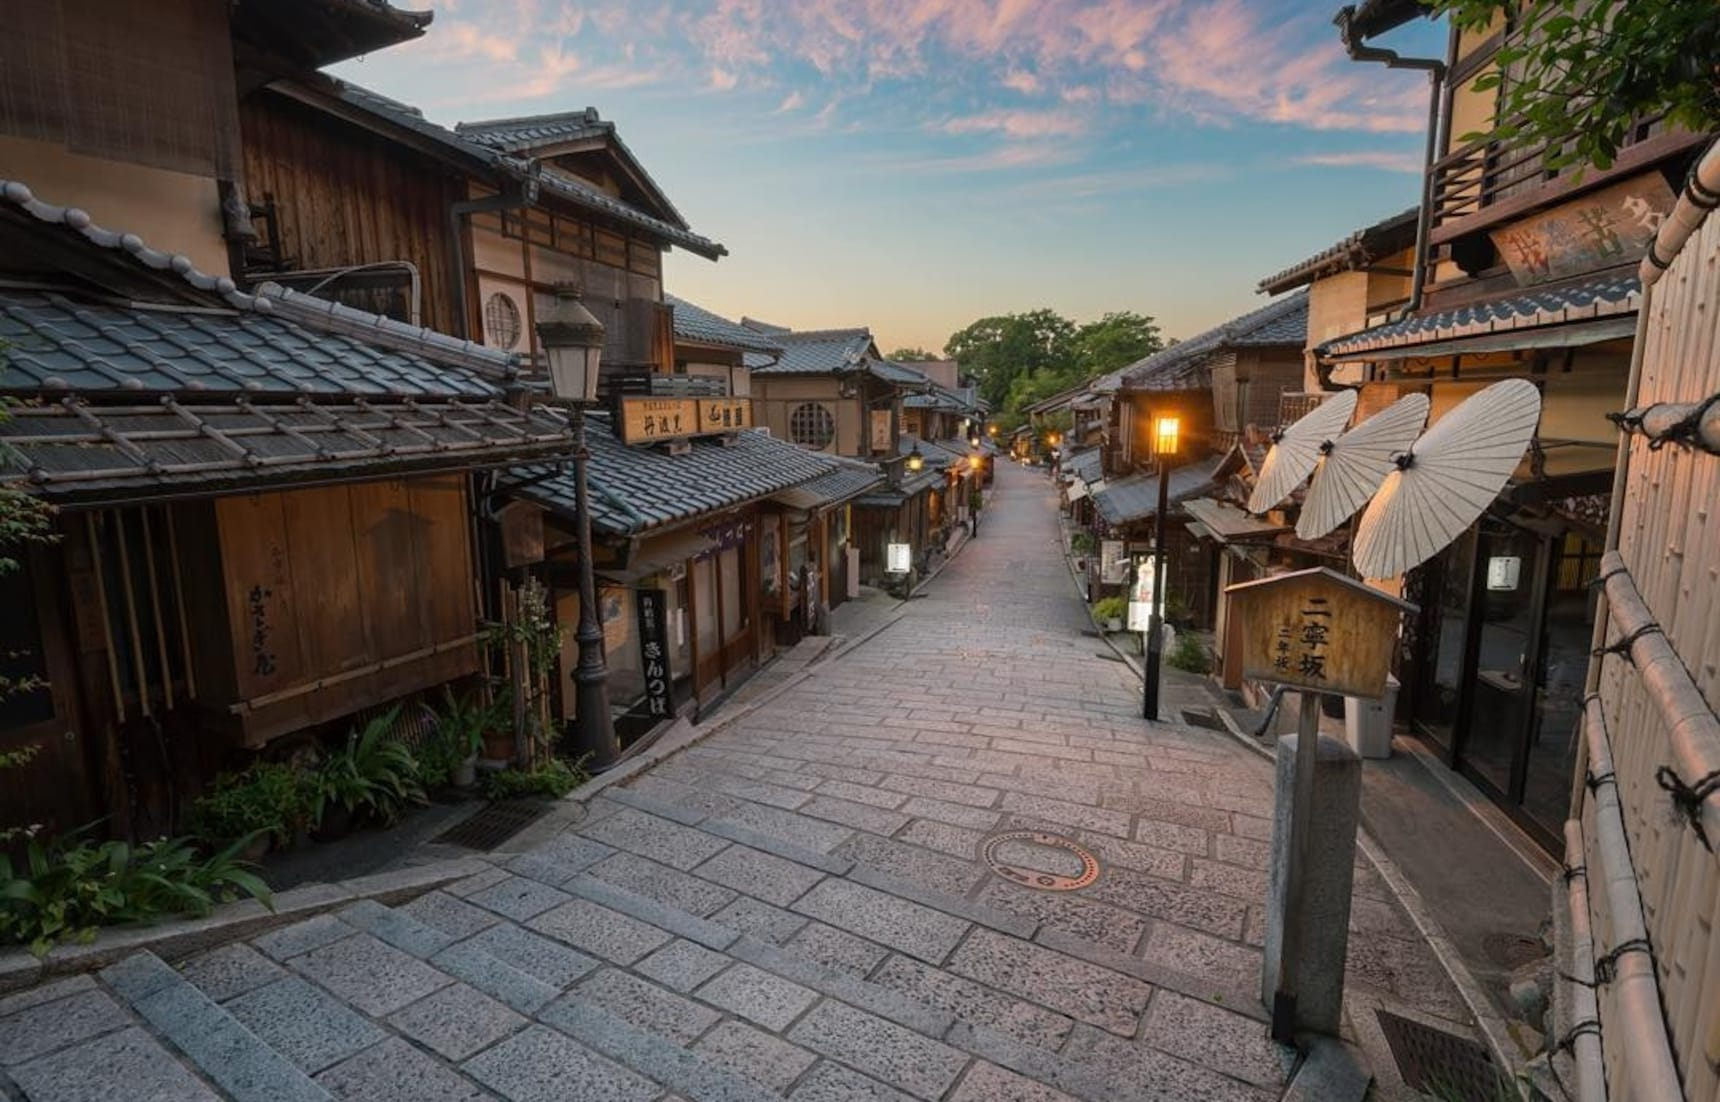 Get 'Spirited Away' by These Photos of Kyoto